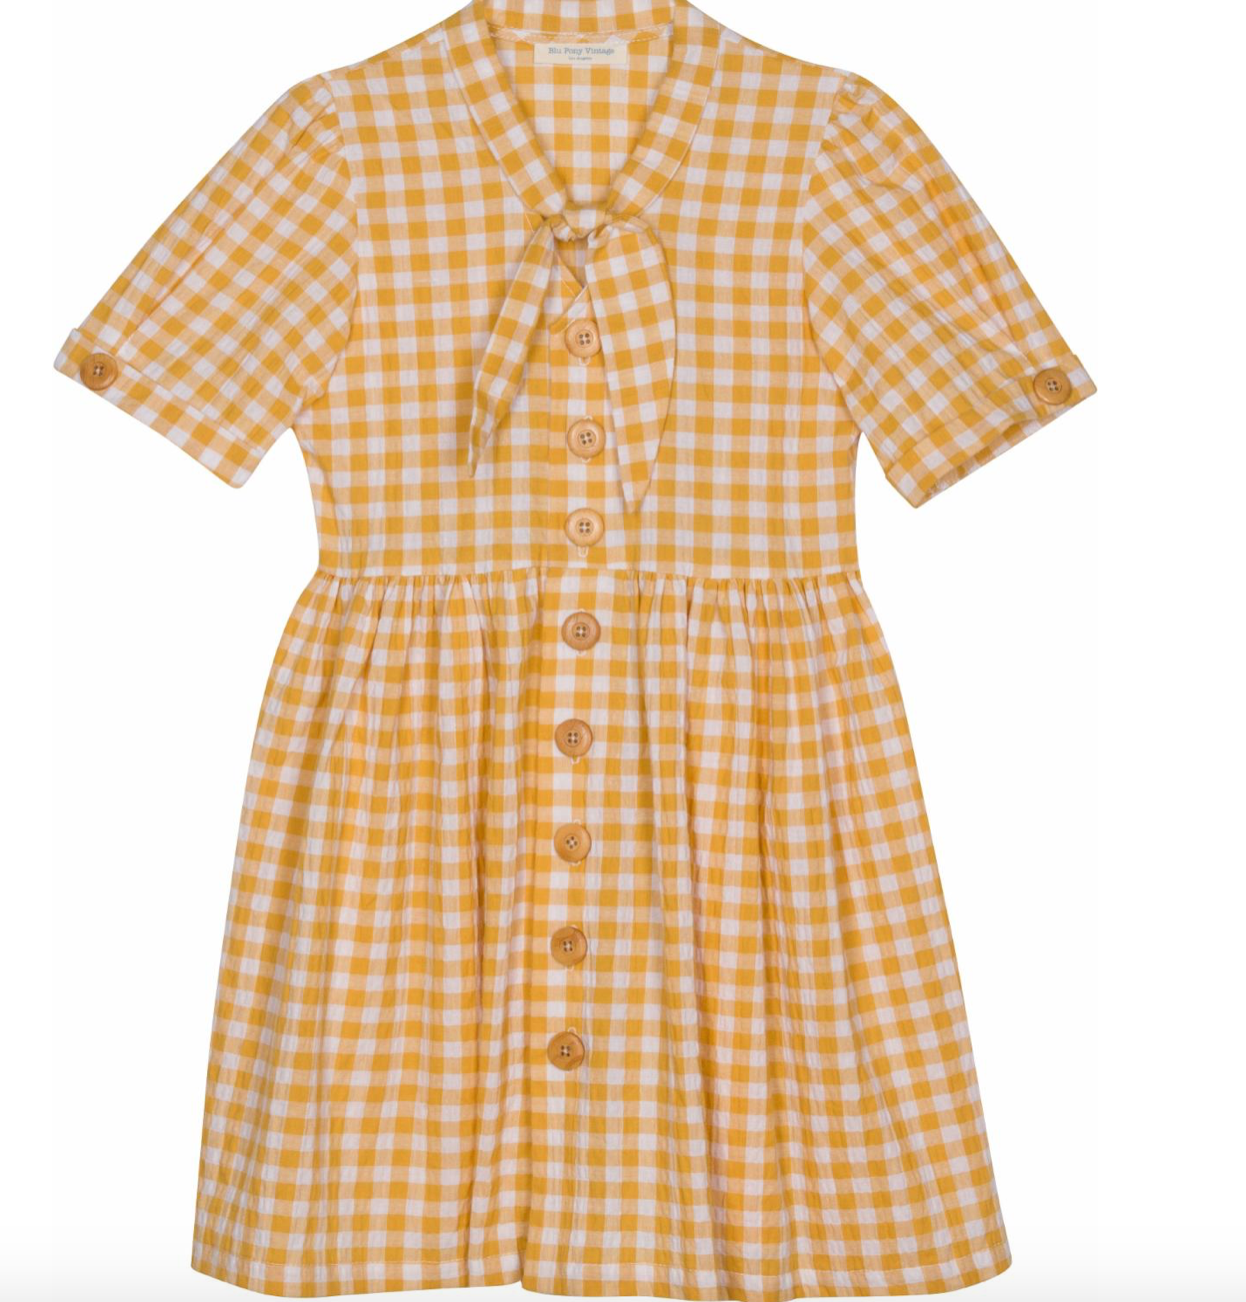 Annette Sunshine Yellow Sear Dress - Little Owly